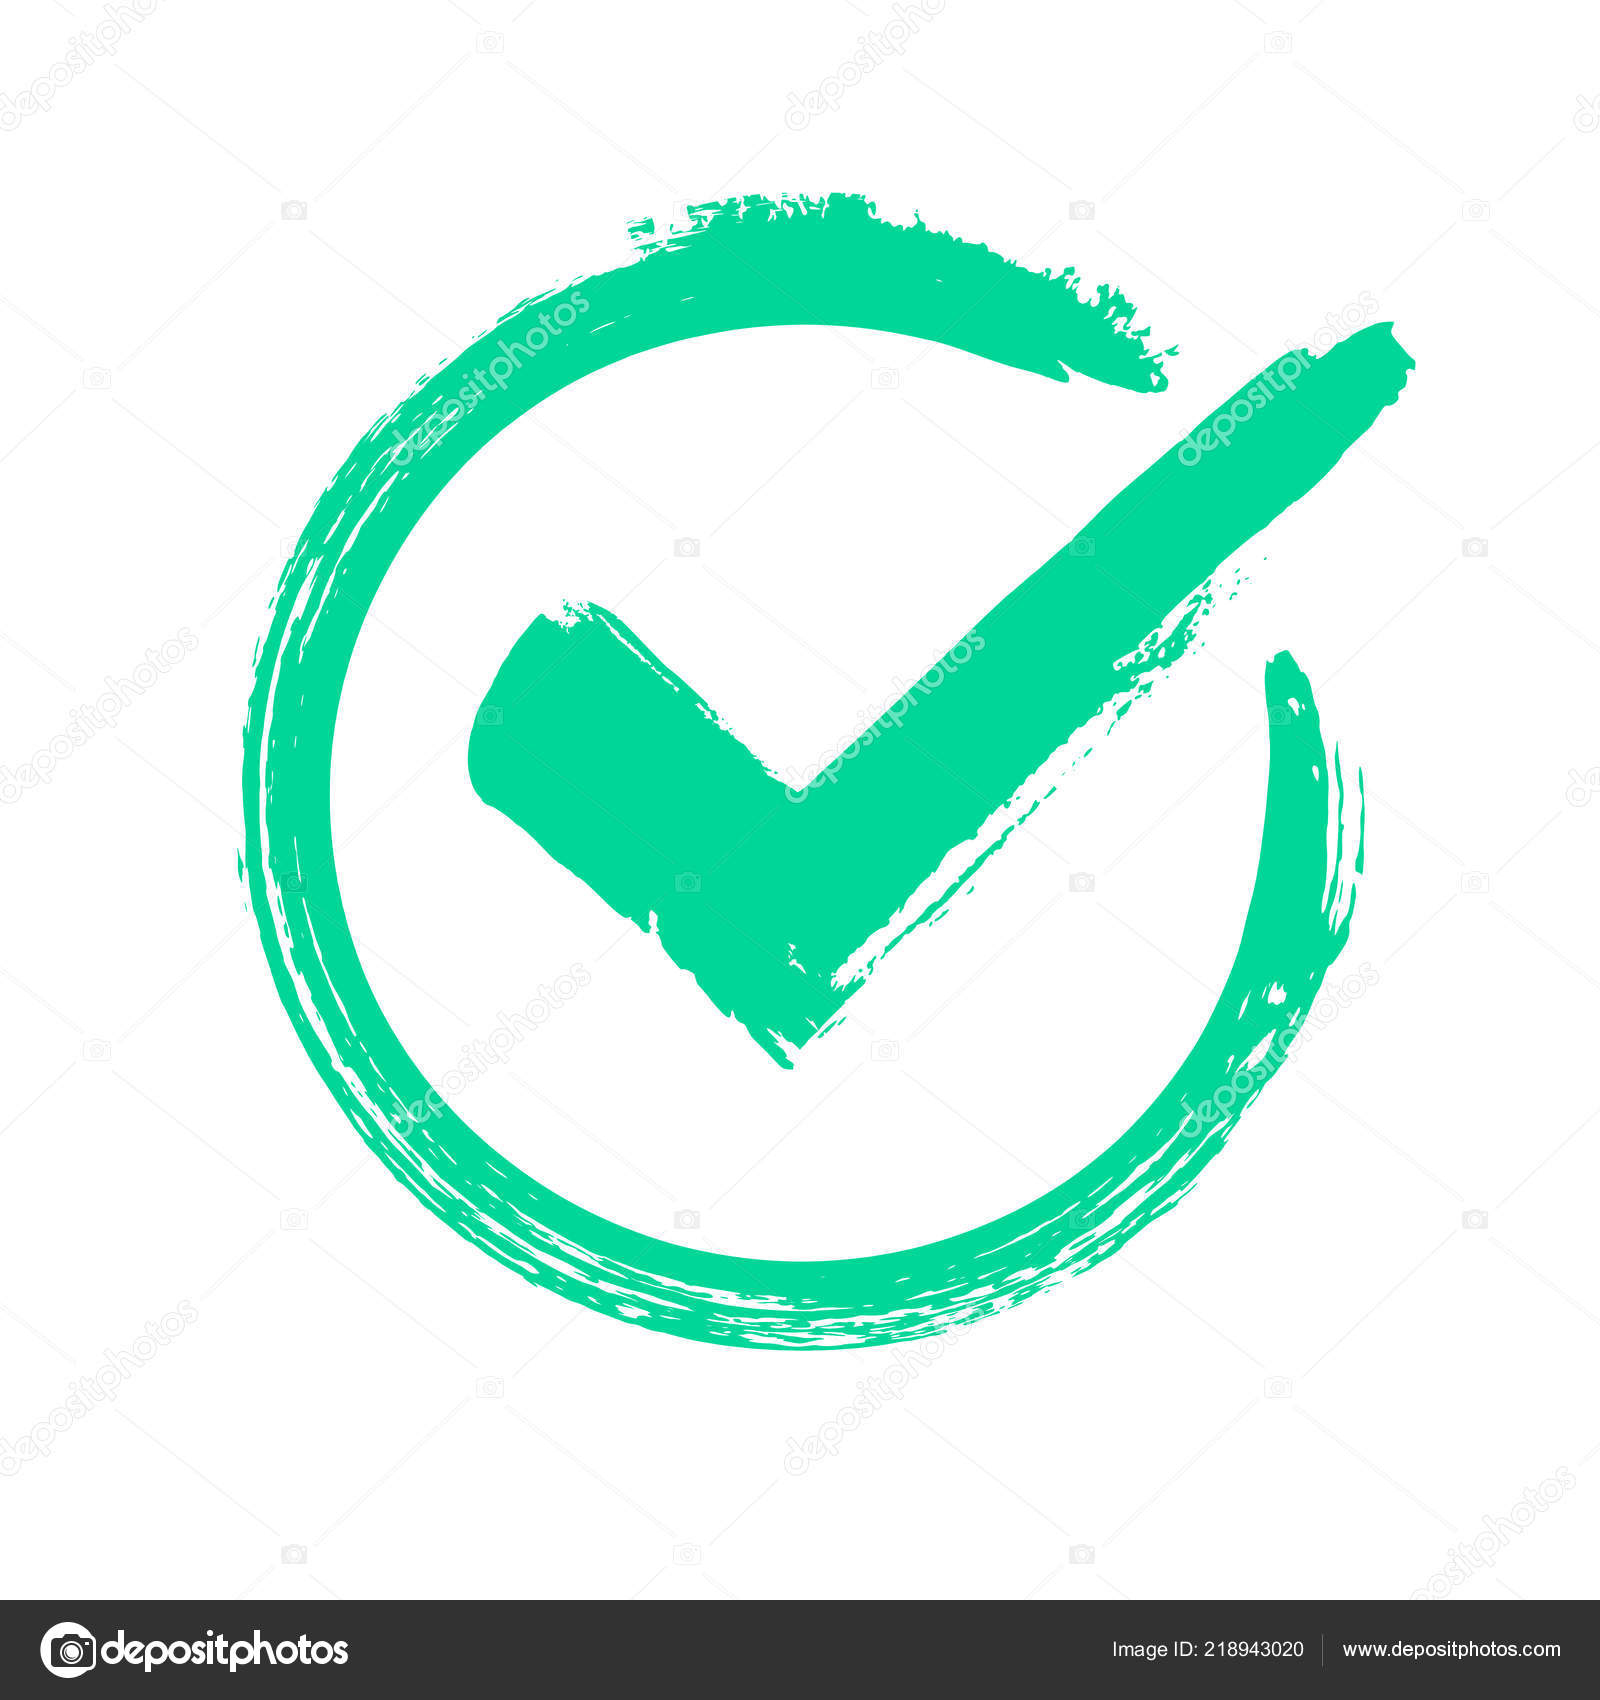 green grunge check mark correct answer checking vote or choice